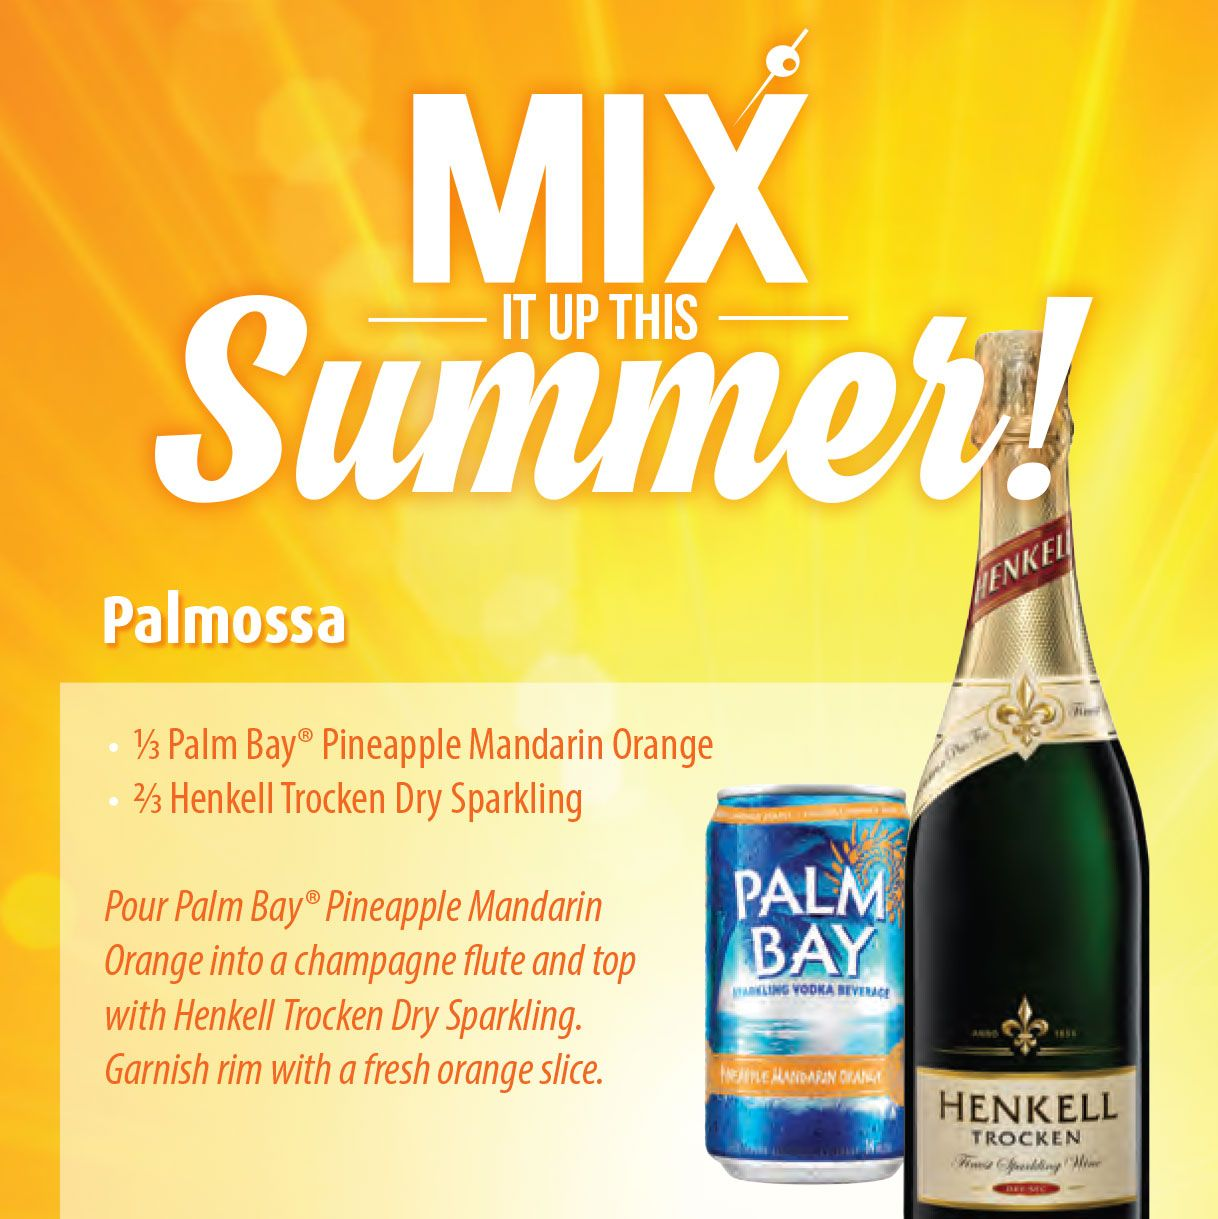 Mix It Up This Summer With NLC And A Palmossa. Combine